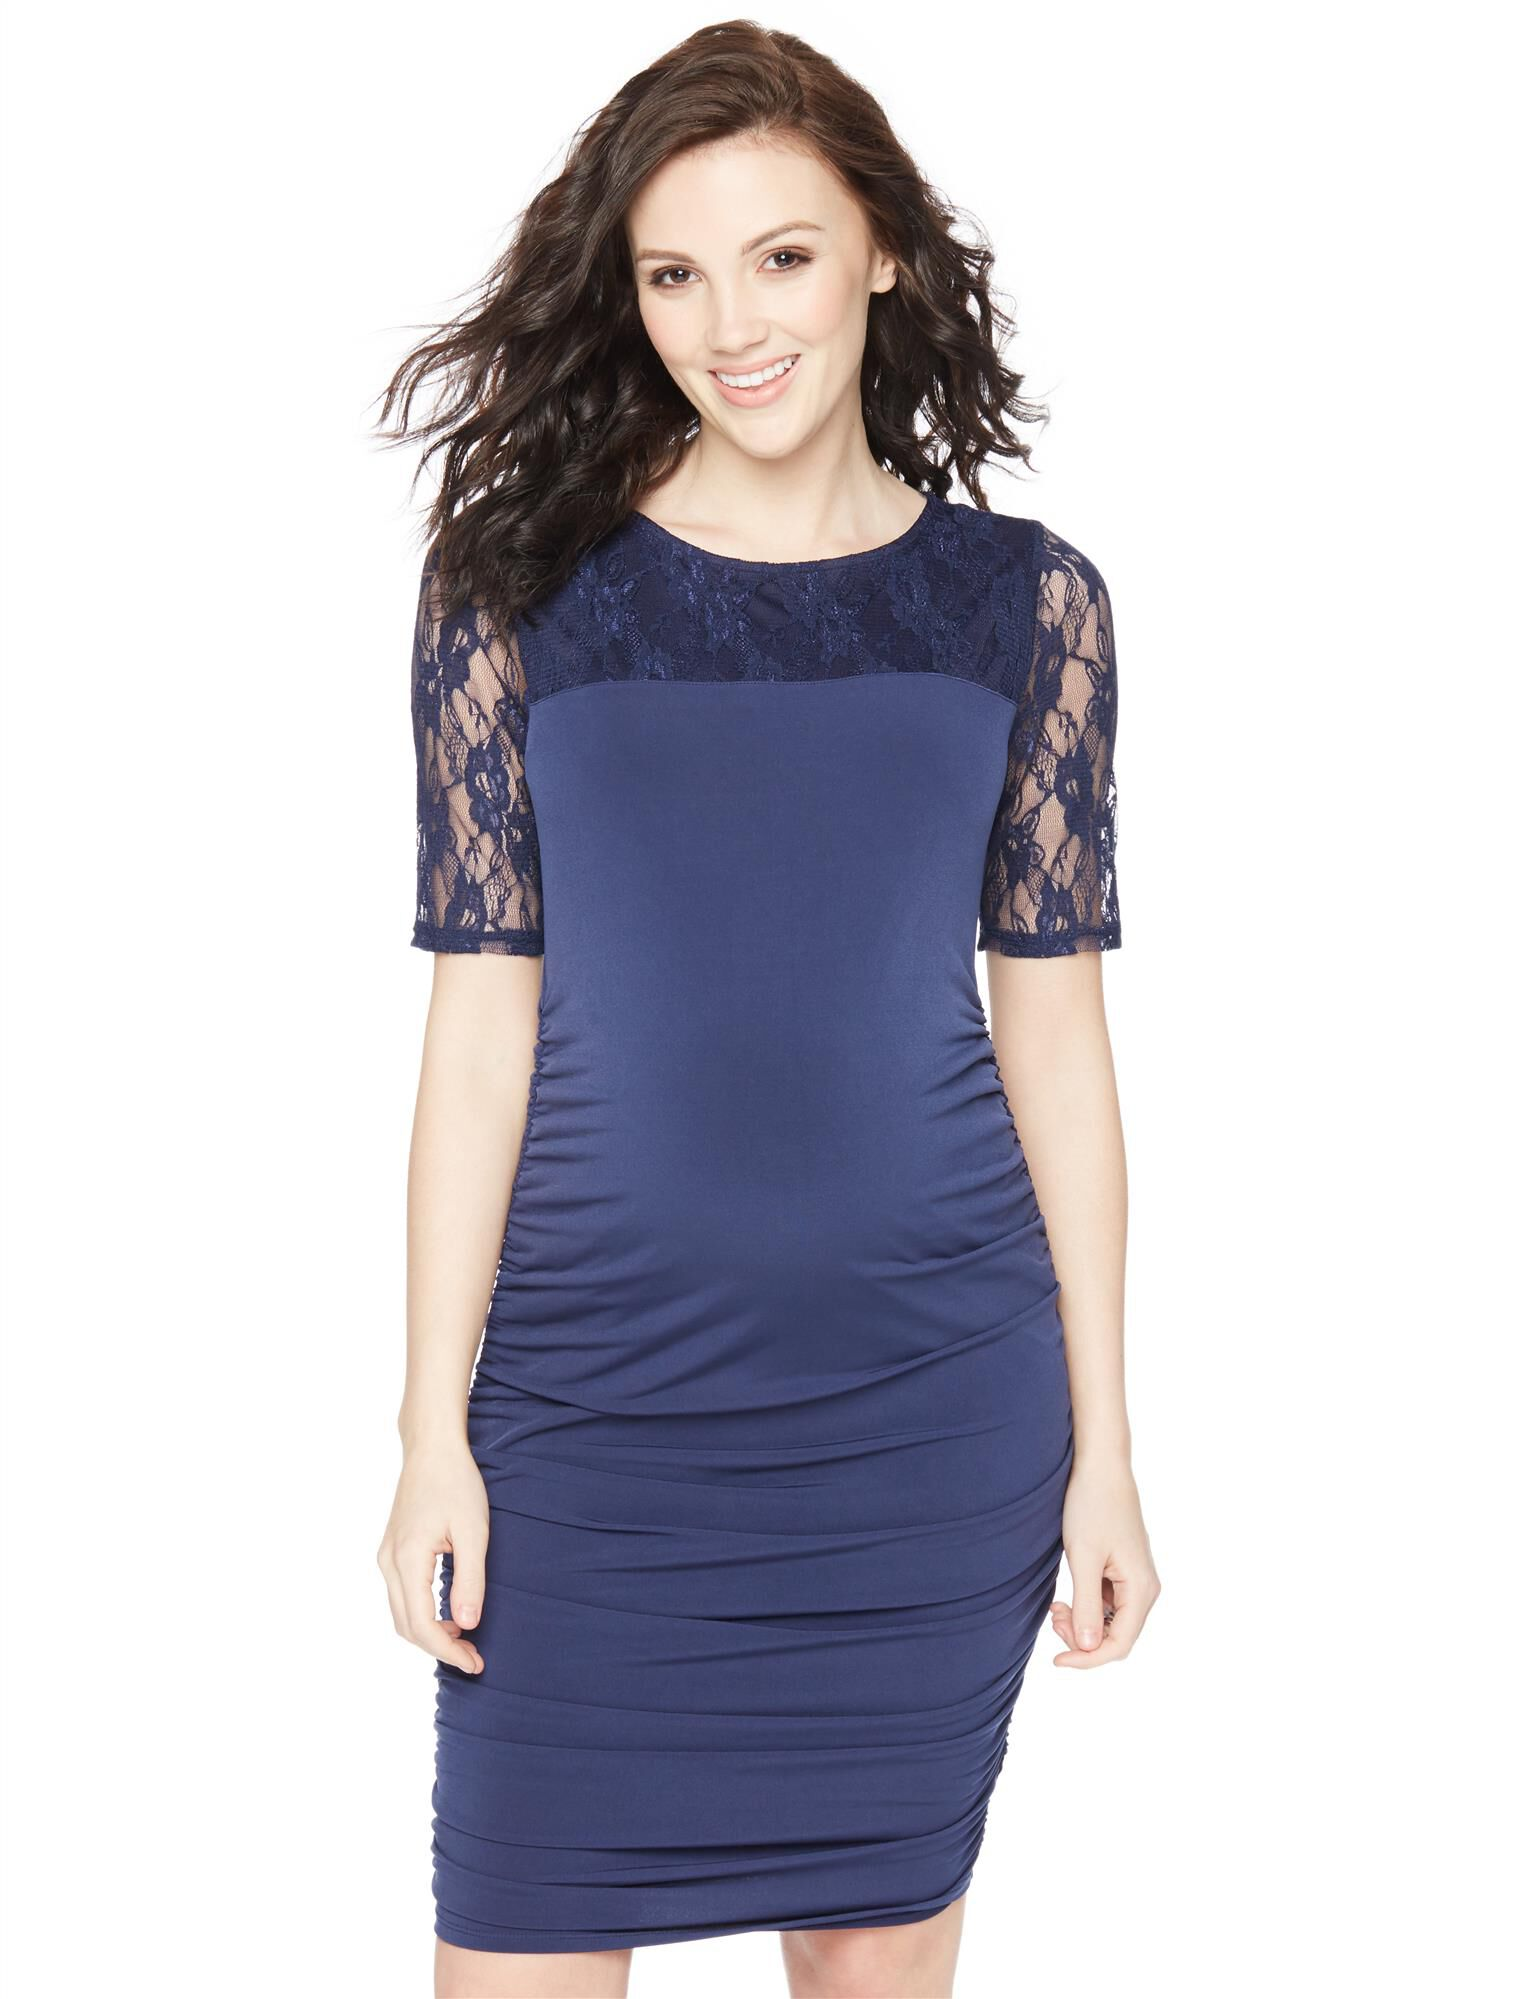 Vintage Style Maternity Clothes Lace Elbow Sleeve Maternity Dress $29.99 AT vintagedancer.com